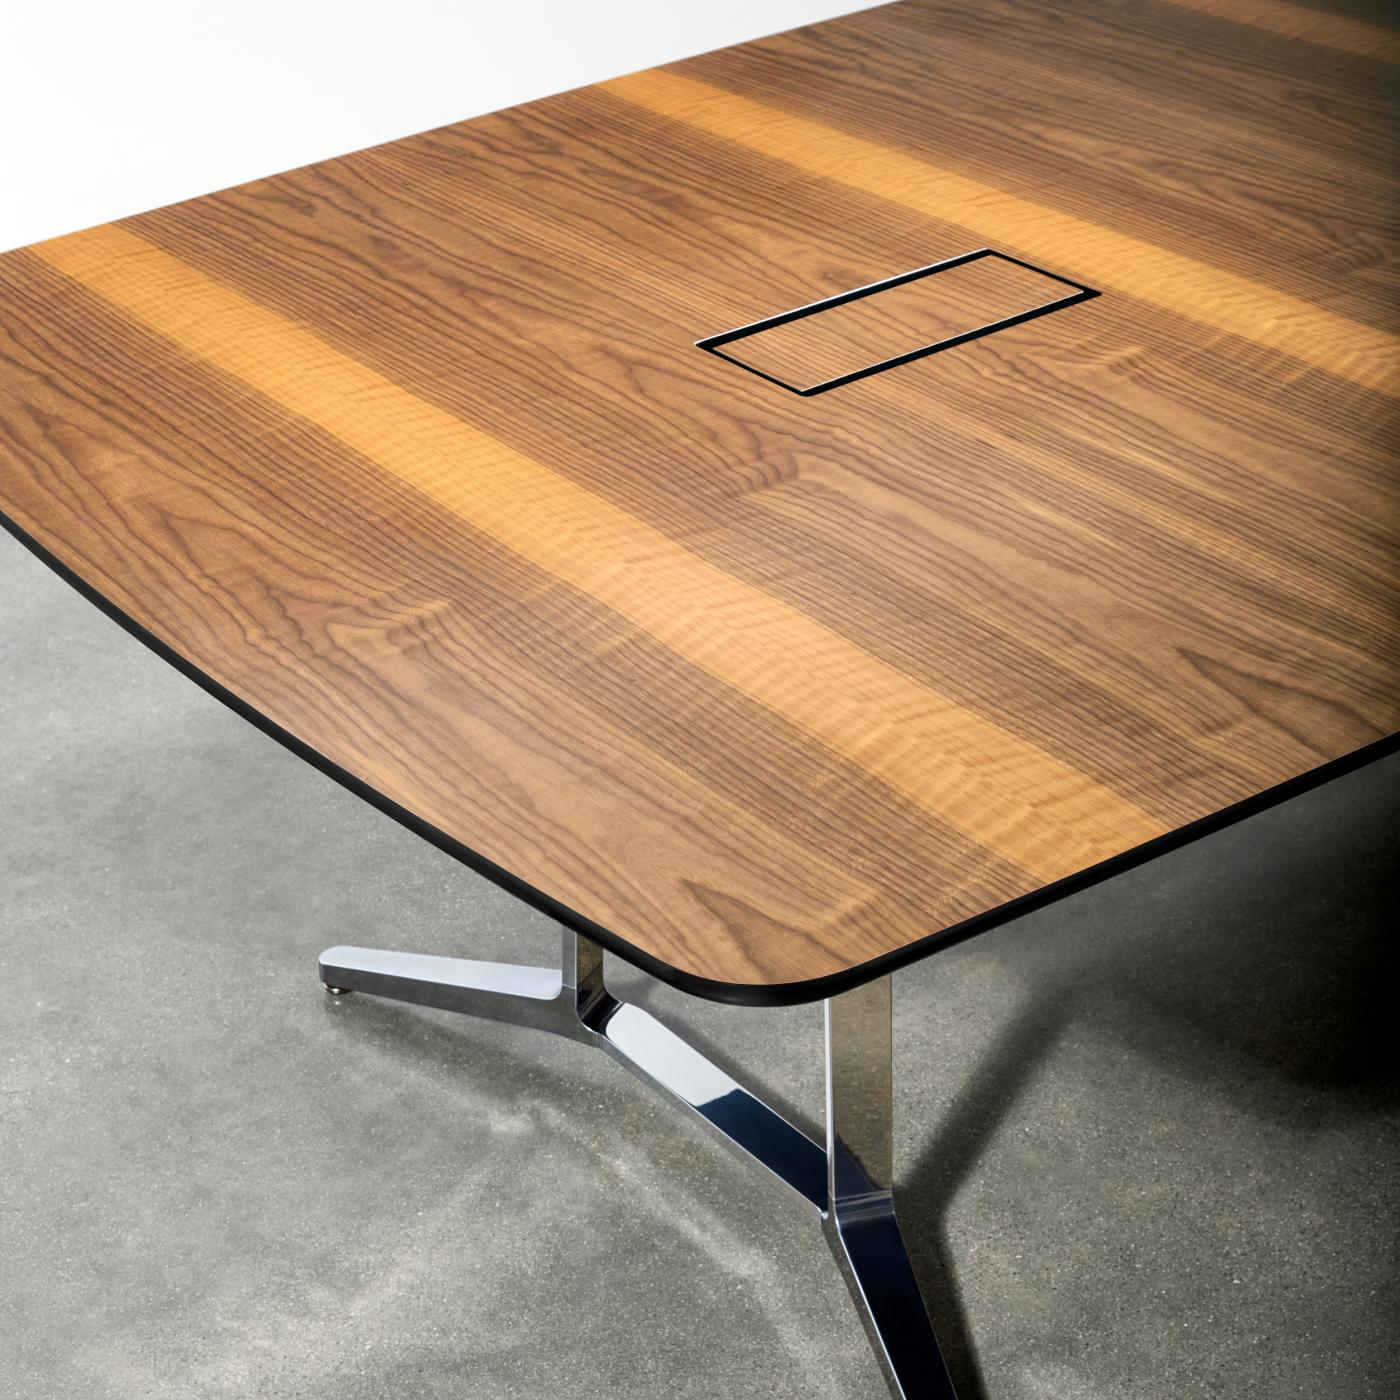 Power/data access doors are perfectly grain-matched to the table surface.